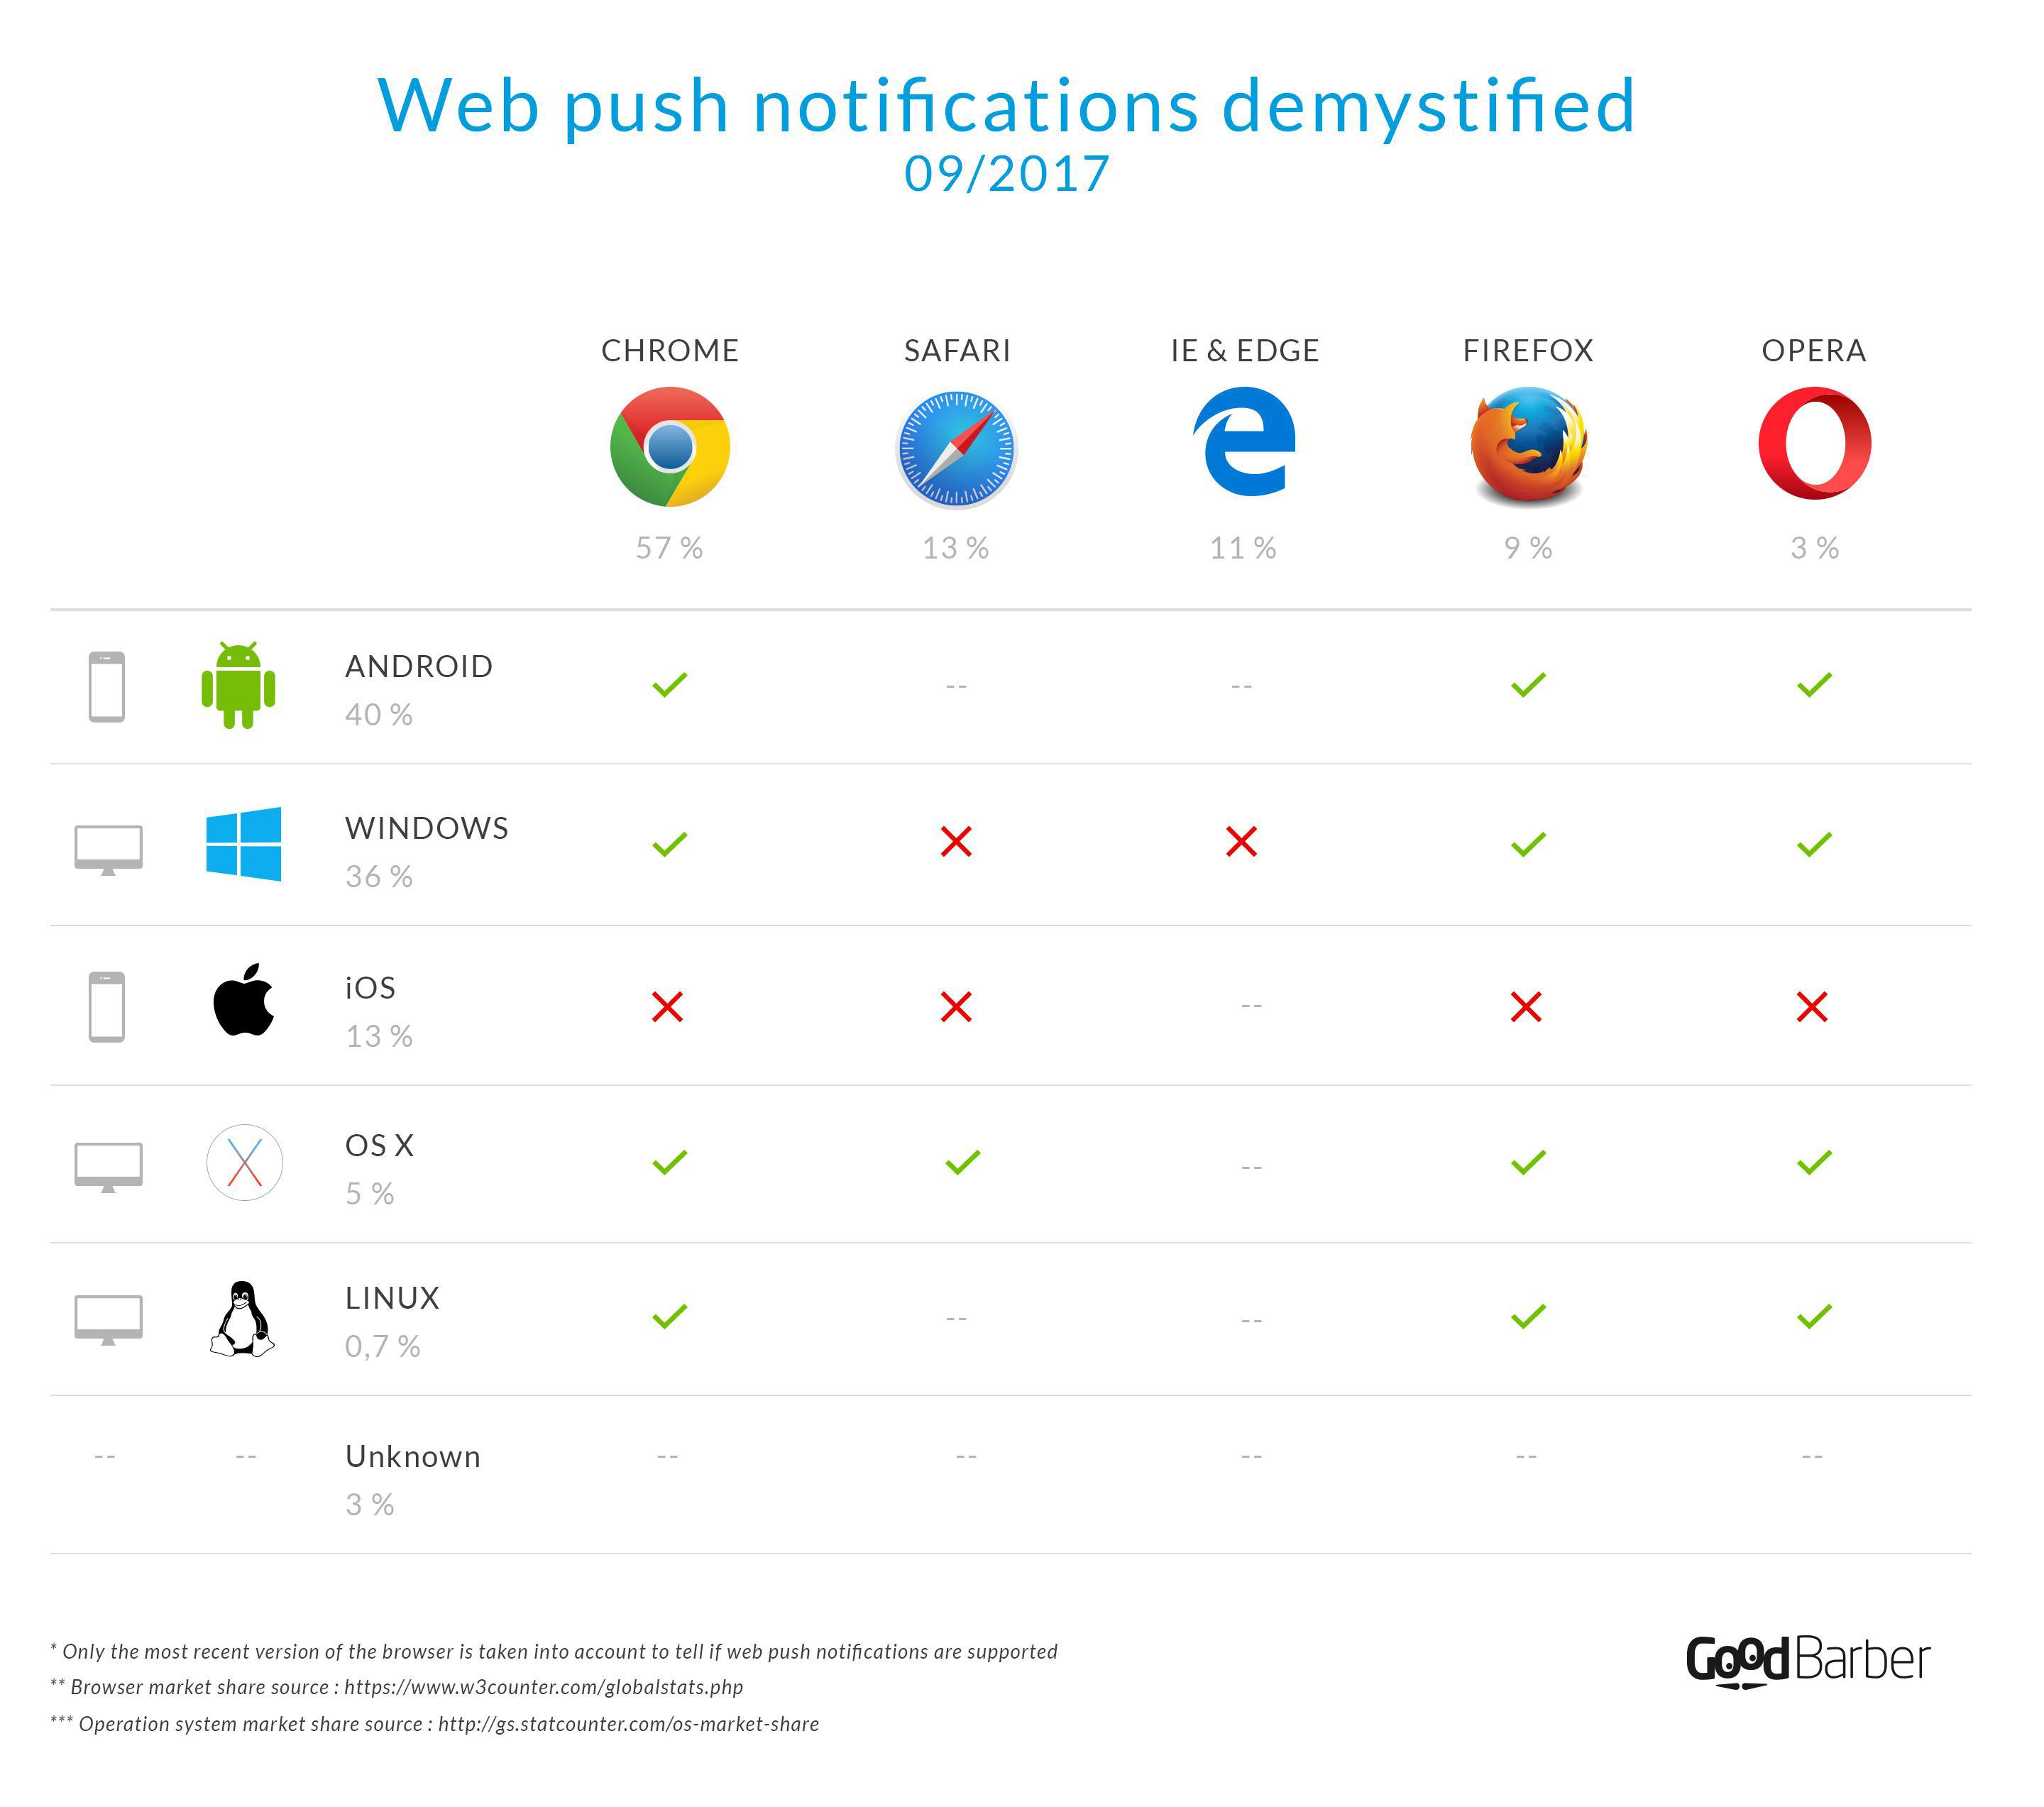 Notificaciones push para la web (desmitificadas)